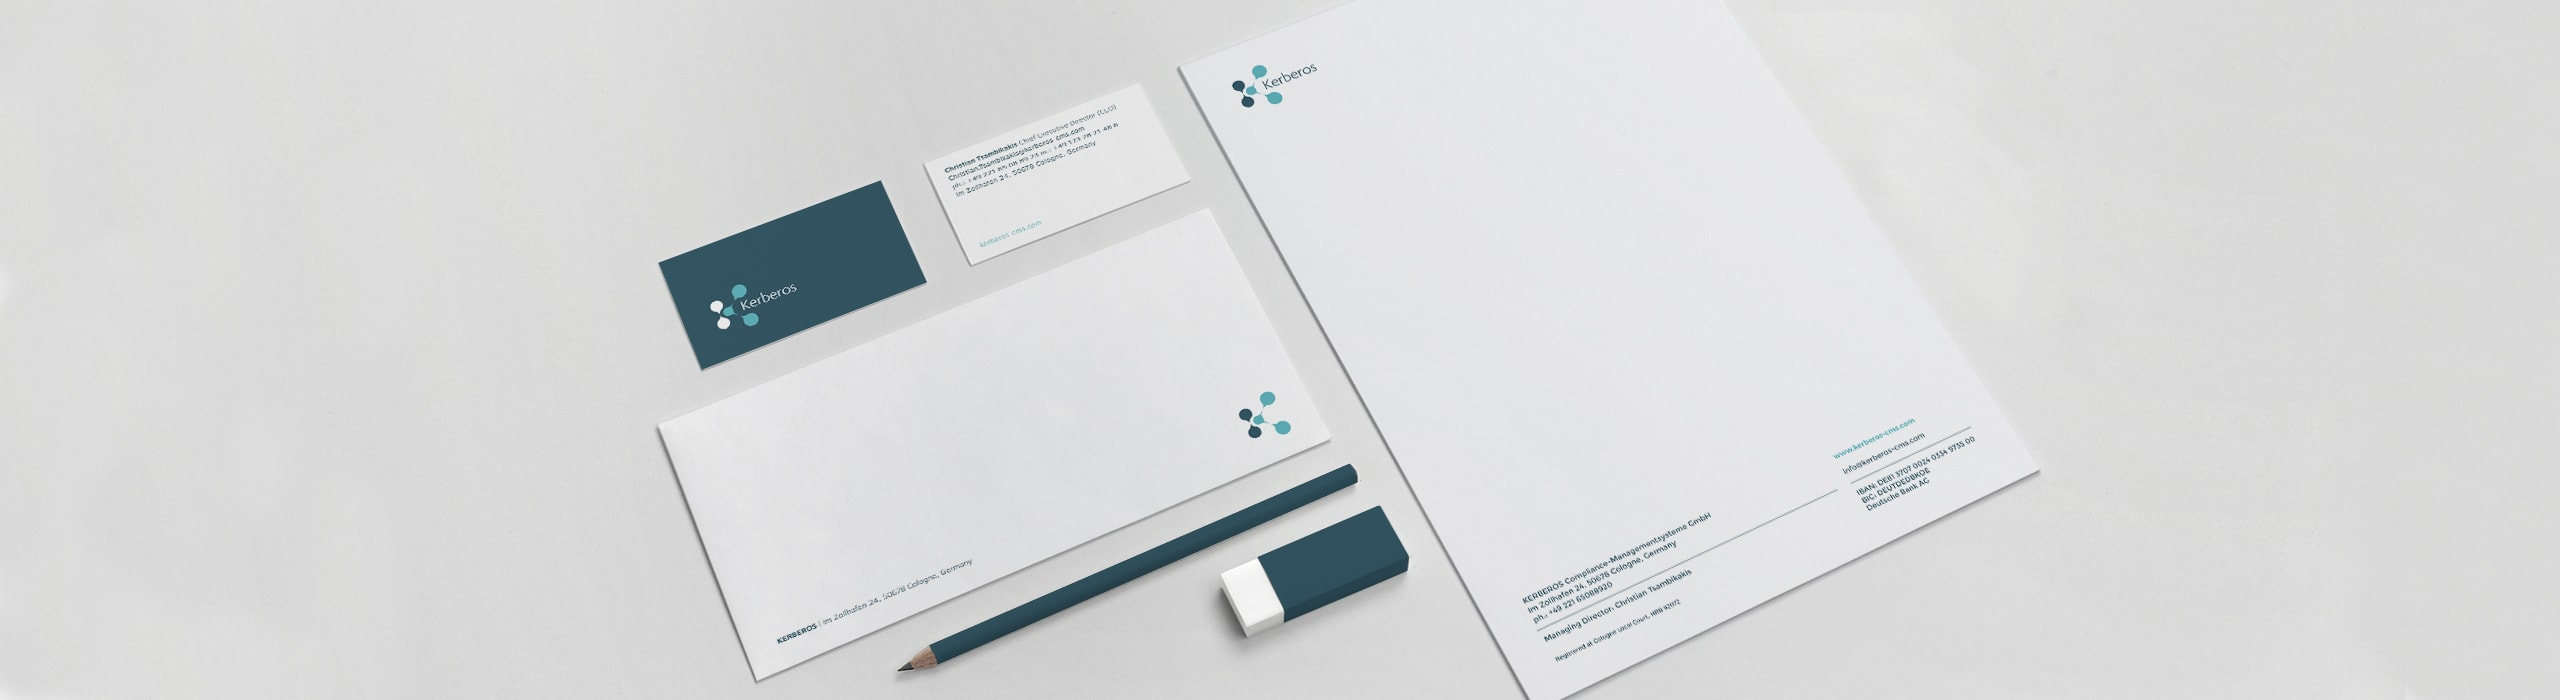 Kerberos - stationery - Natie Branding Agency